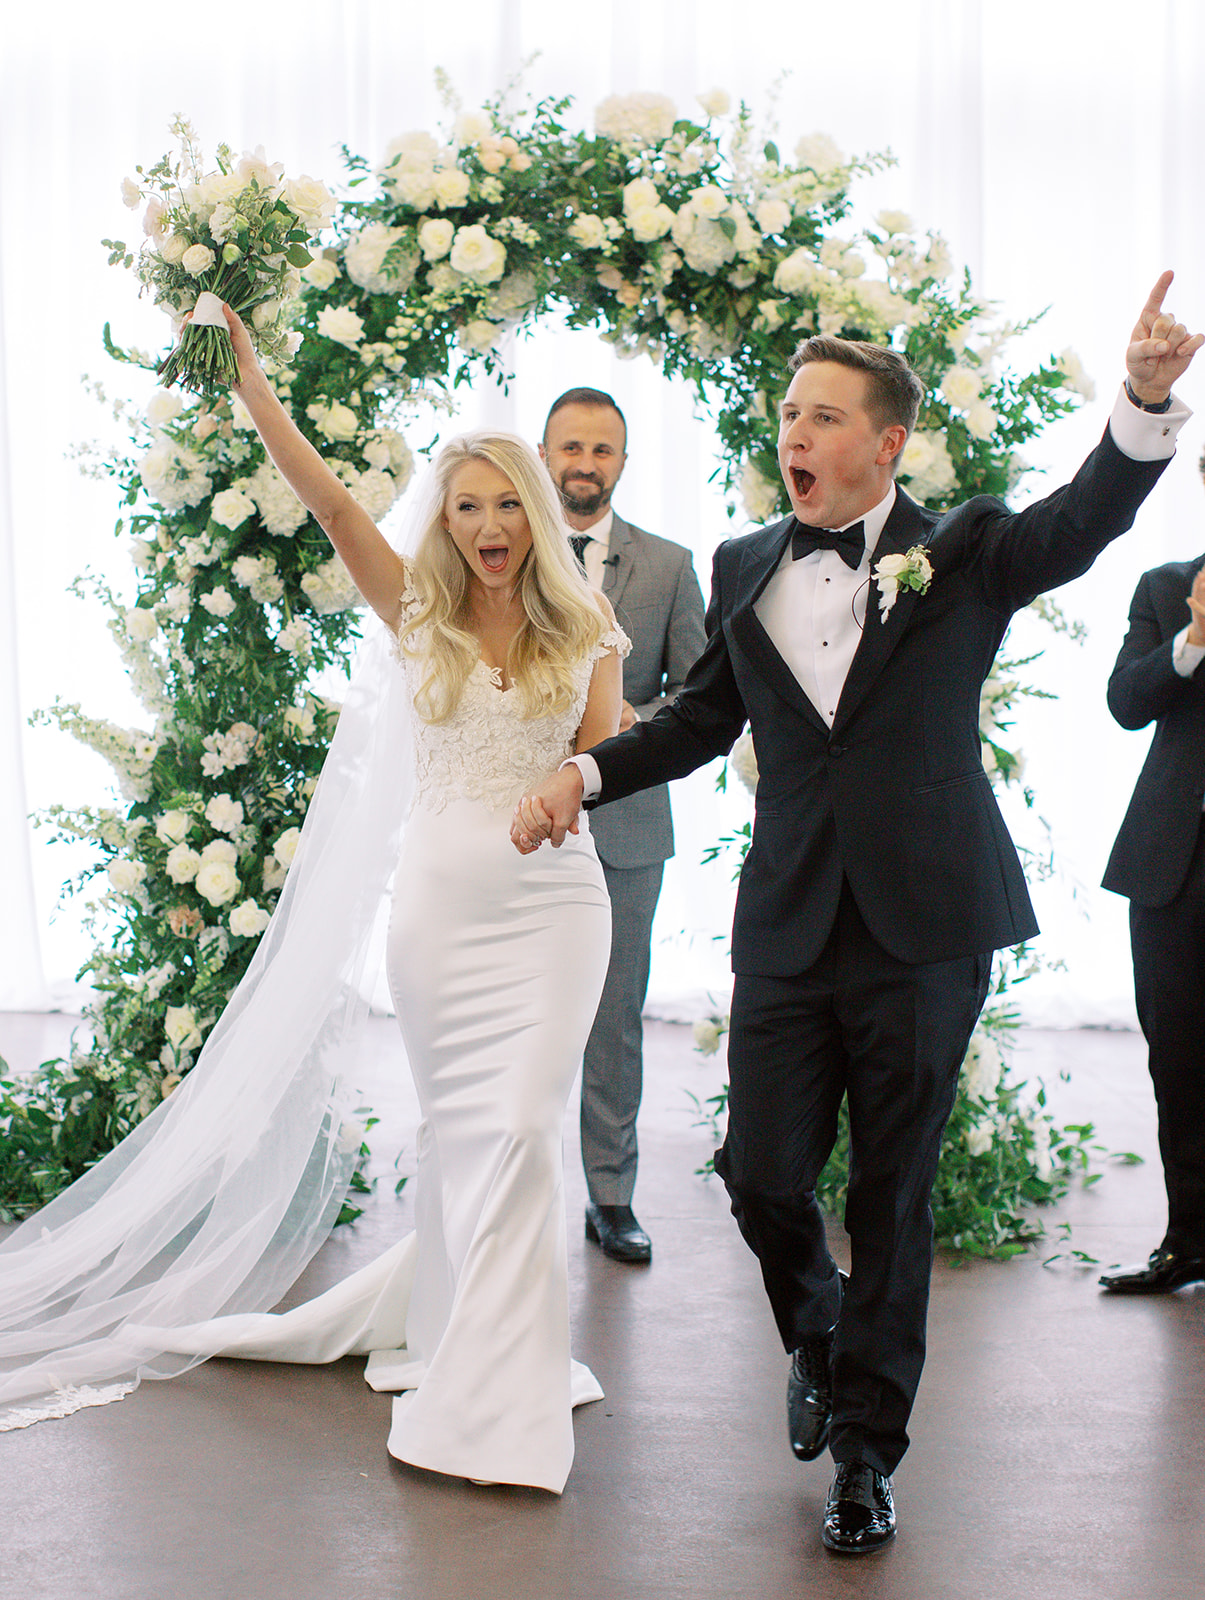 """Bride and groom cheering after saying """"I do"""""""